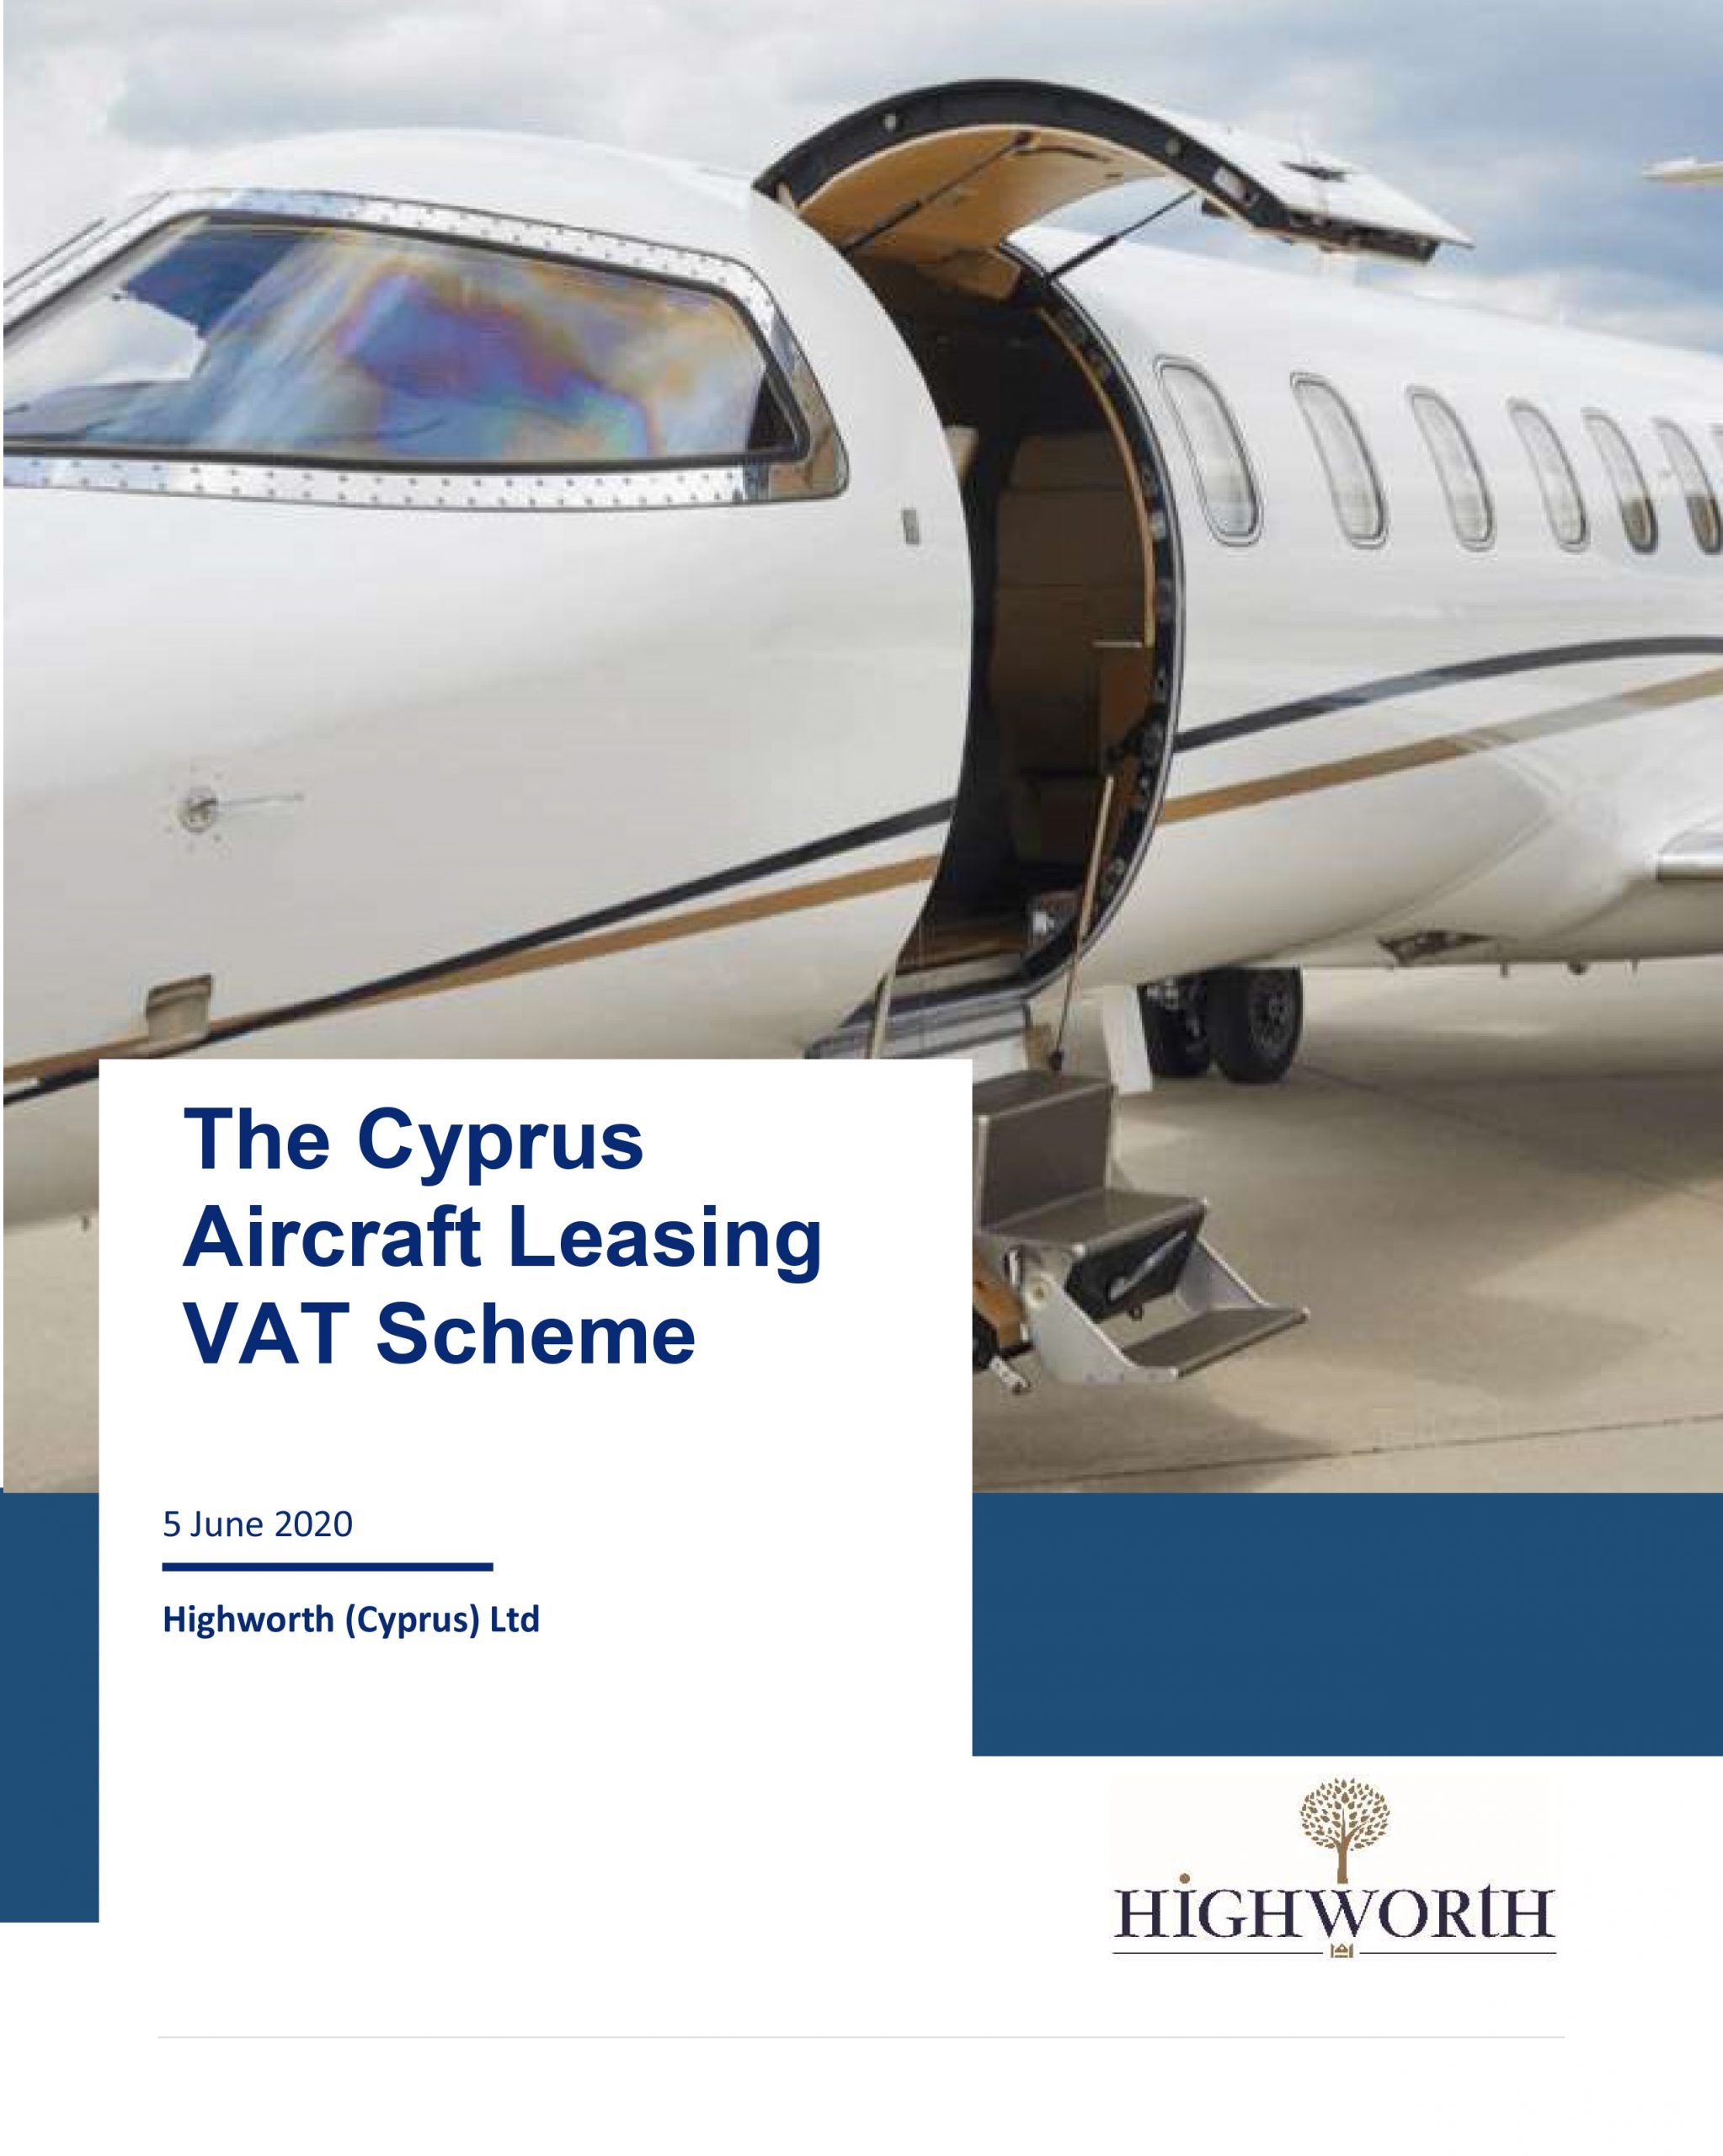 The Cyprus Aircraft Leasing VAT Scheme